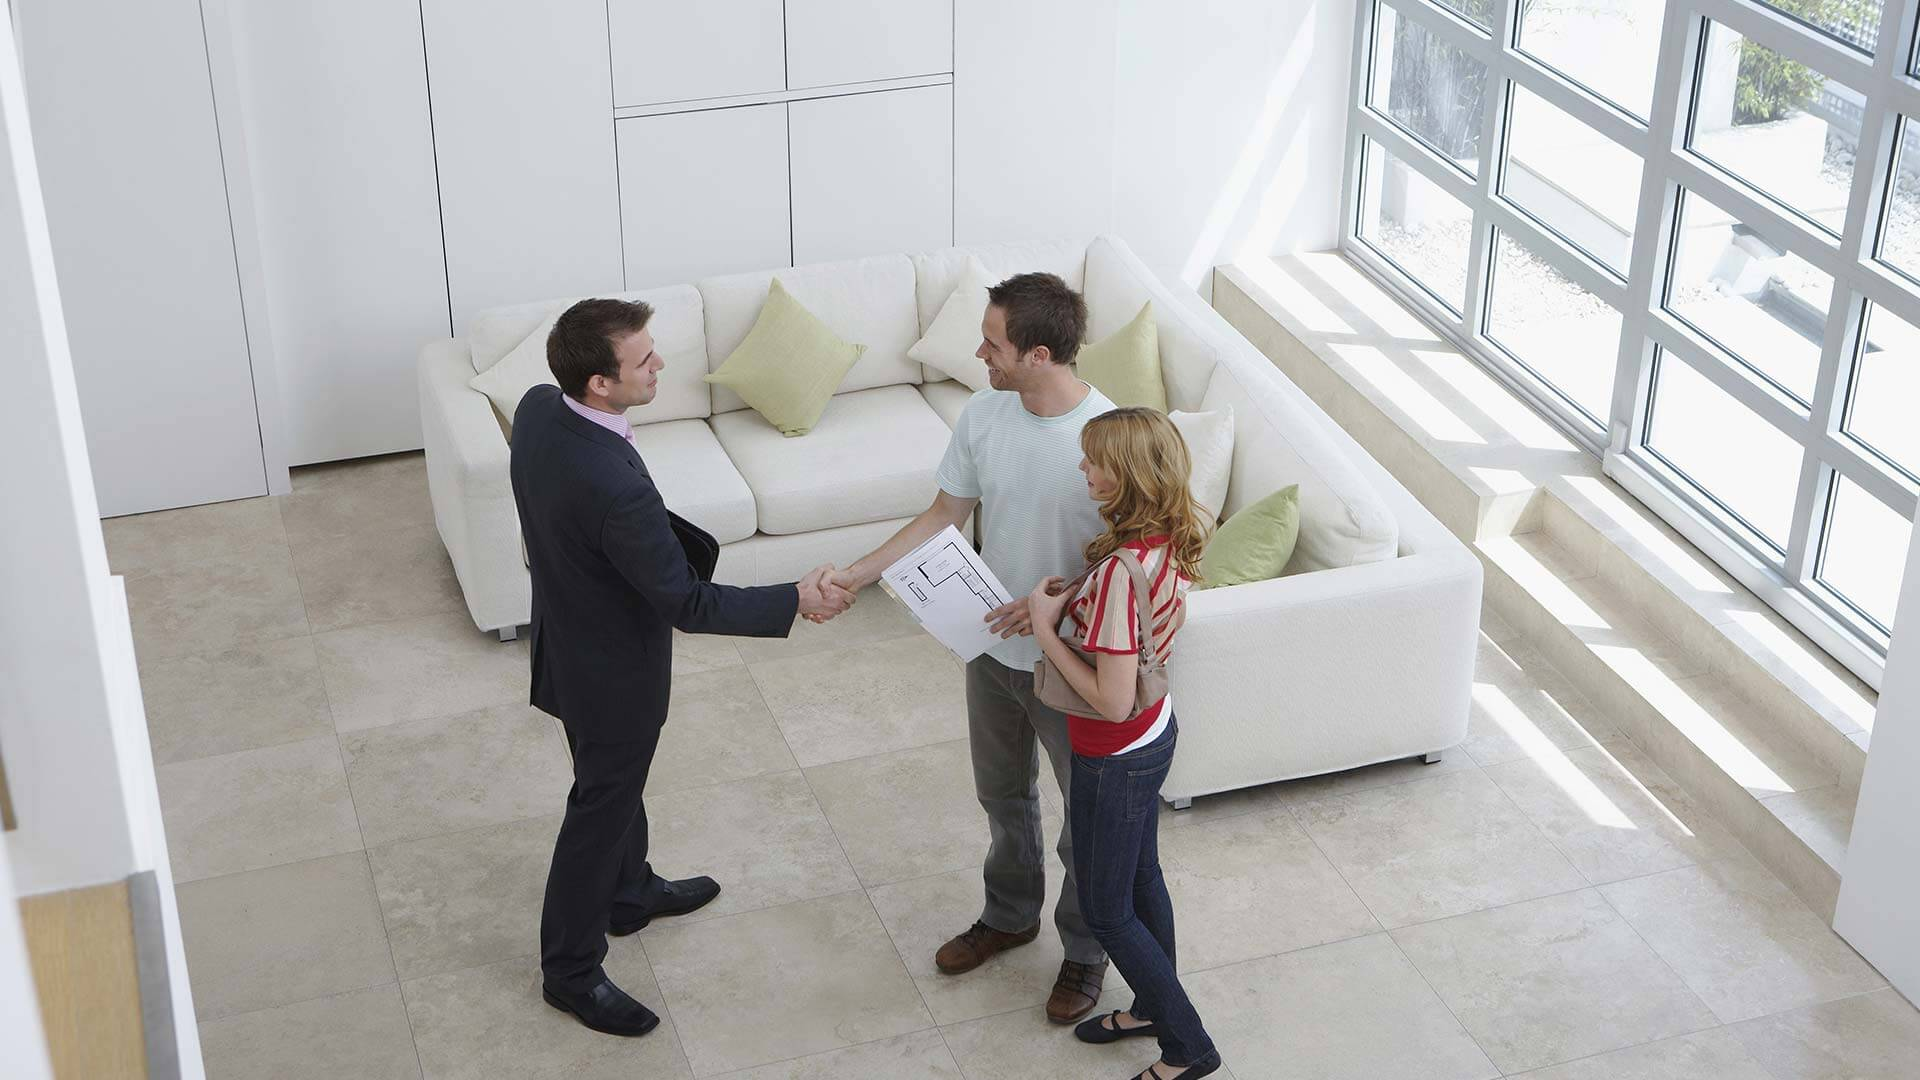 Estate agent shaking hands with tenants